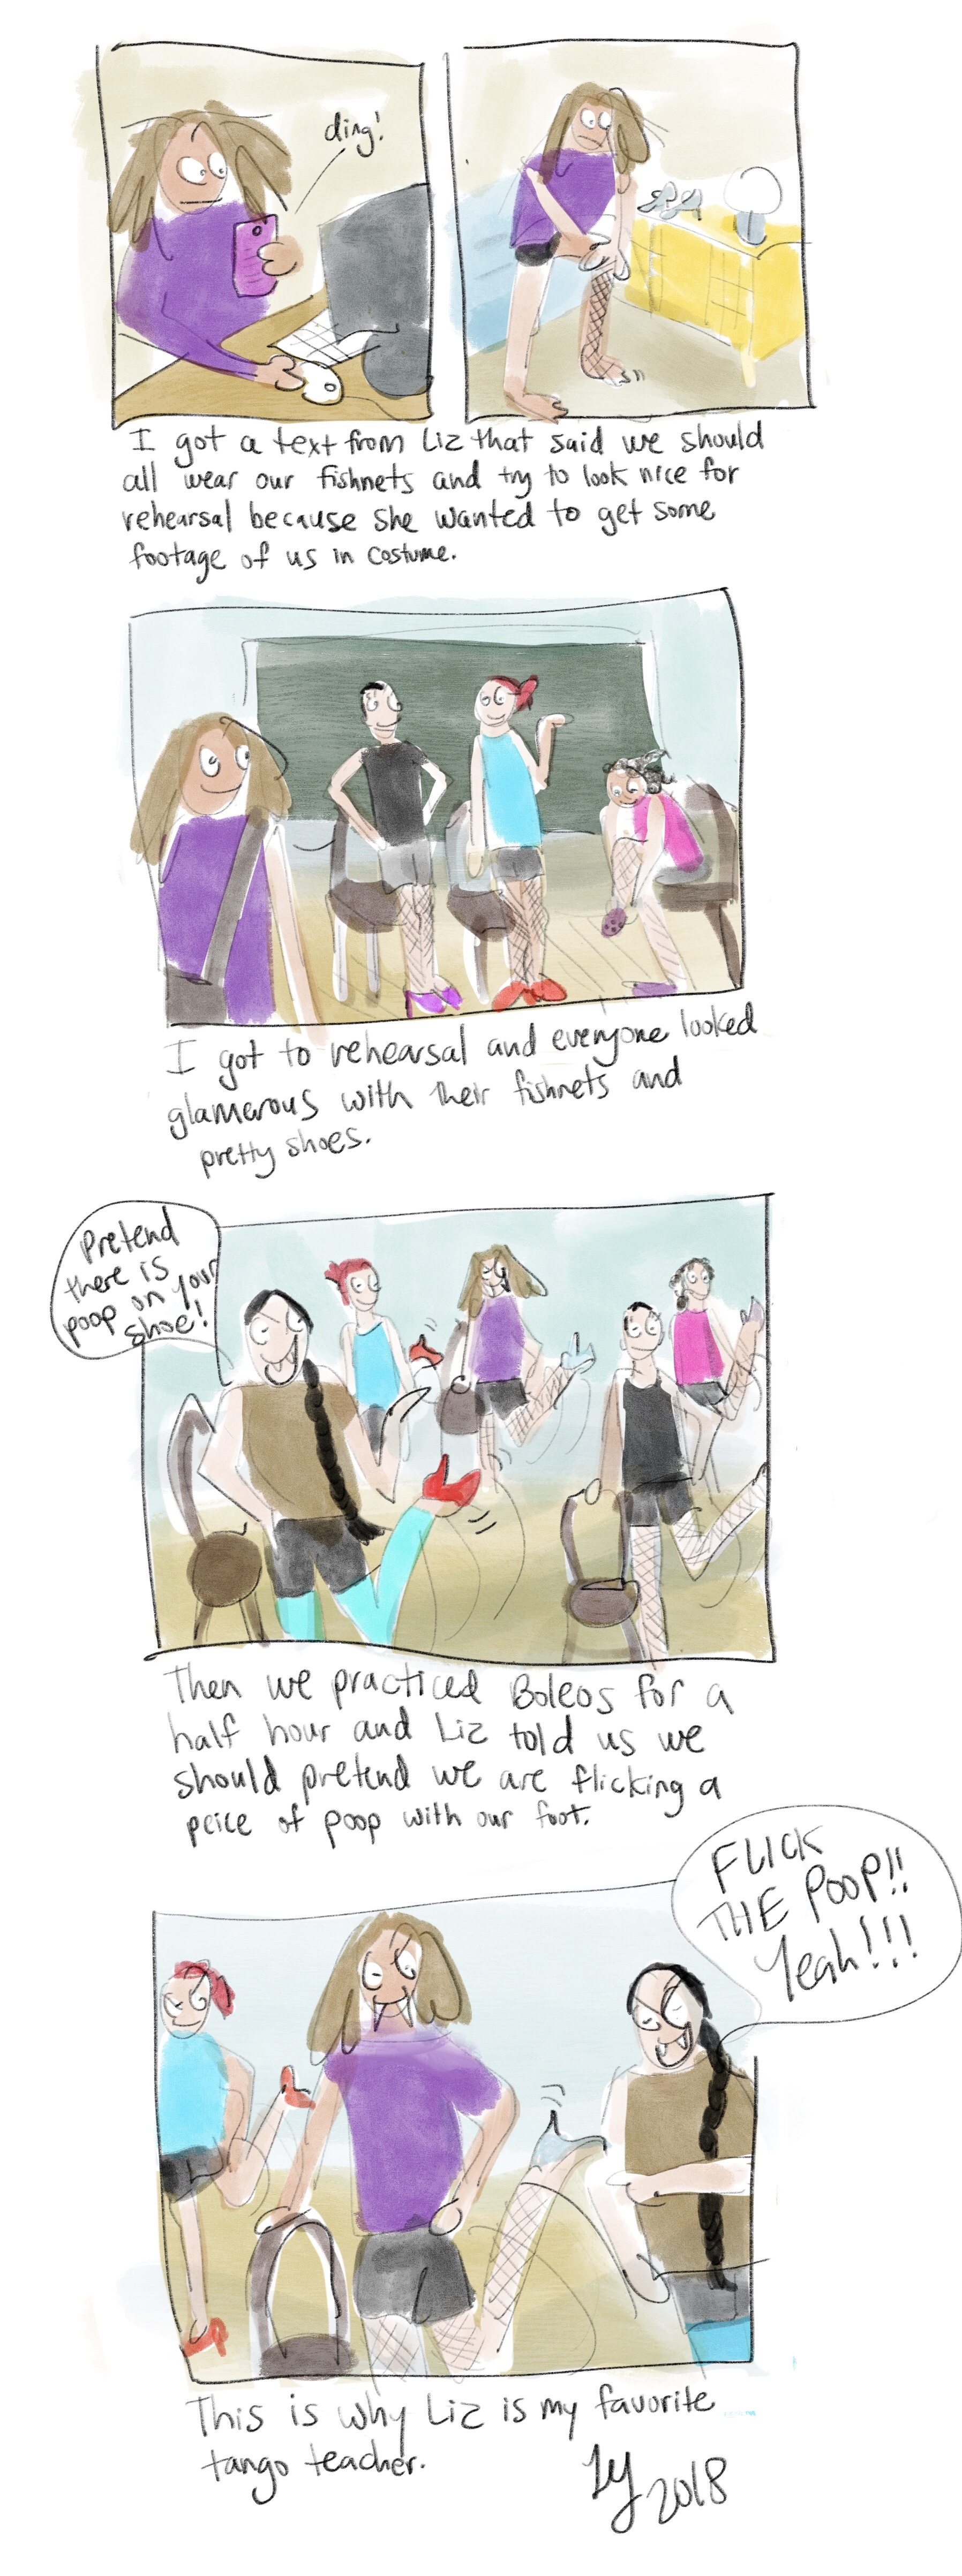 This is an autobiographical comic about Argentine Tango. My tango teacher is so funny because she is not snobby at all. She told us that when we do a boleo we should pretend we are trying to flick a piece of poop off of our shoe.